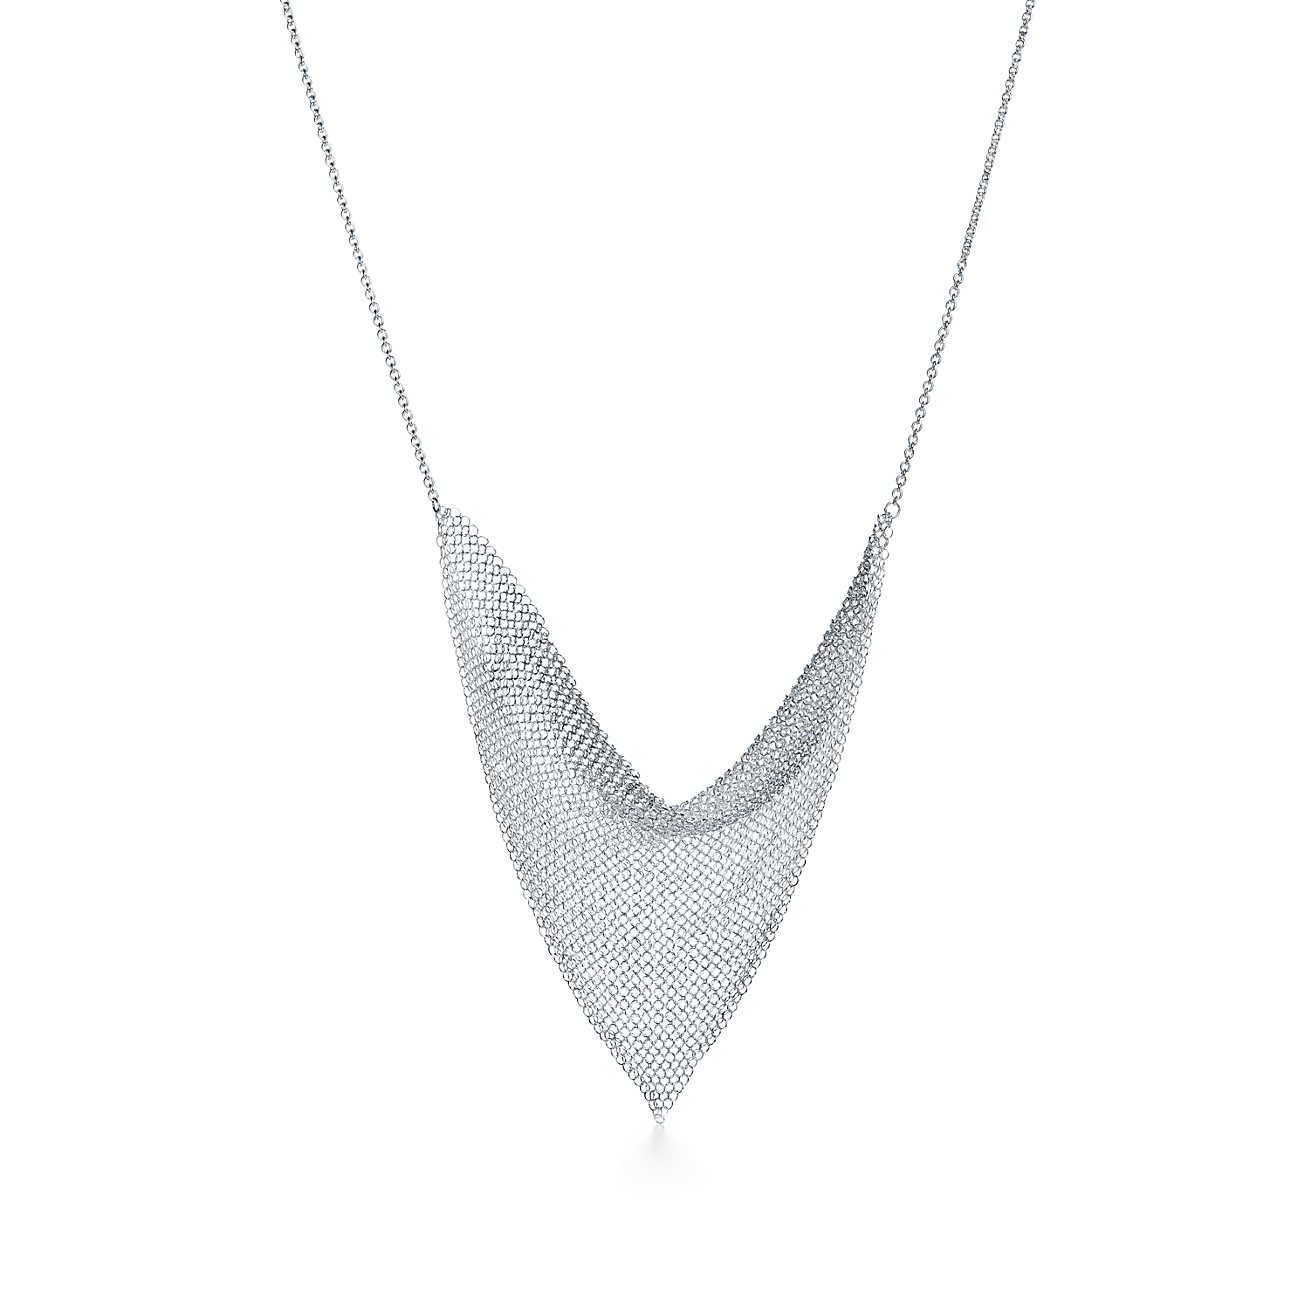 e8fc97431 Mesh Triangle Necklace | Chica urbana | Triangle necklace, Elsa ...